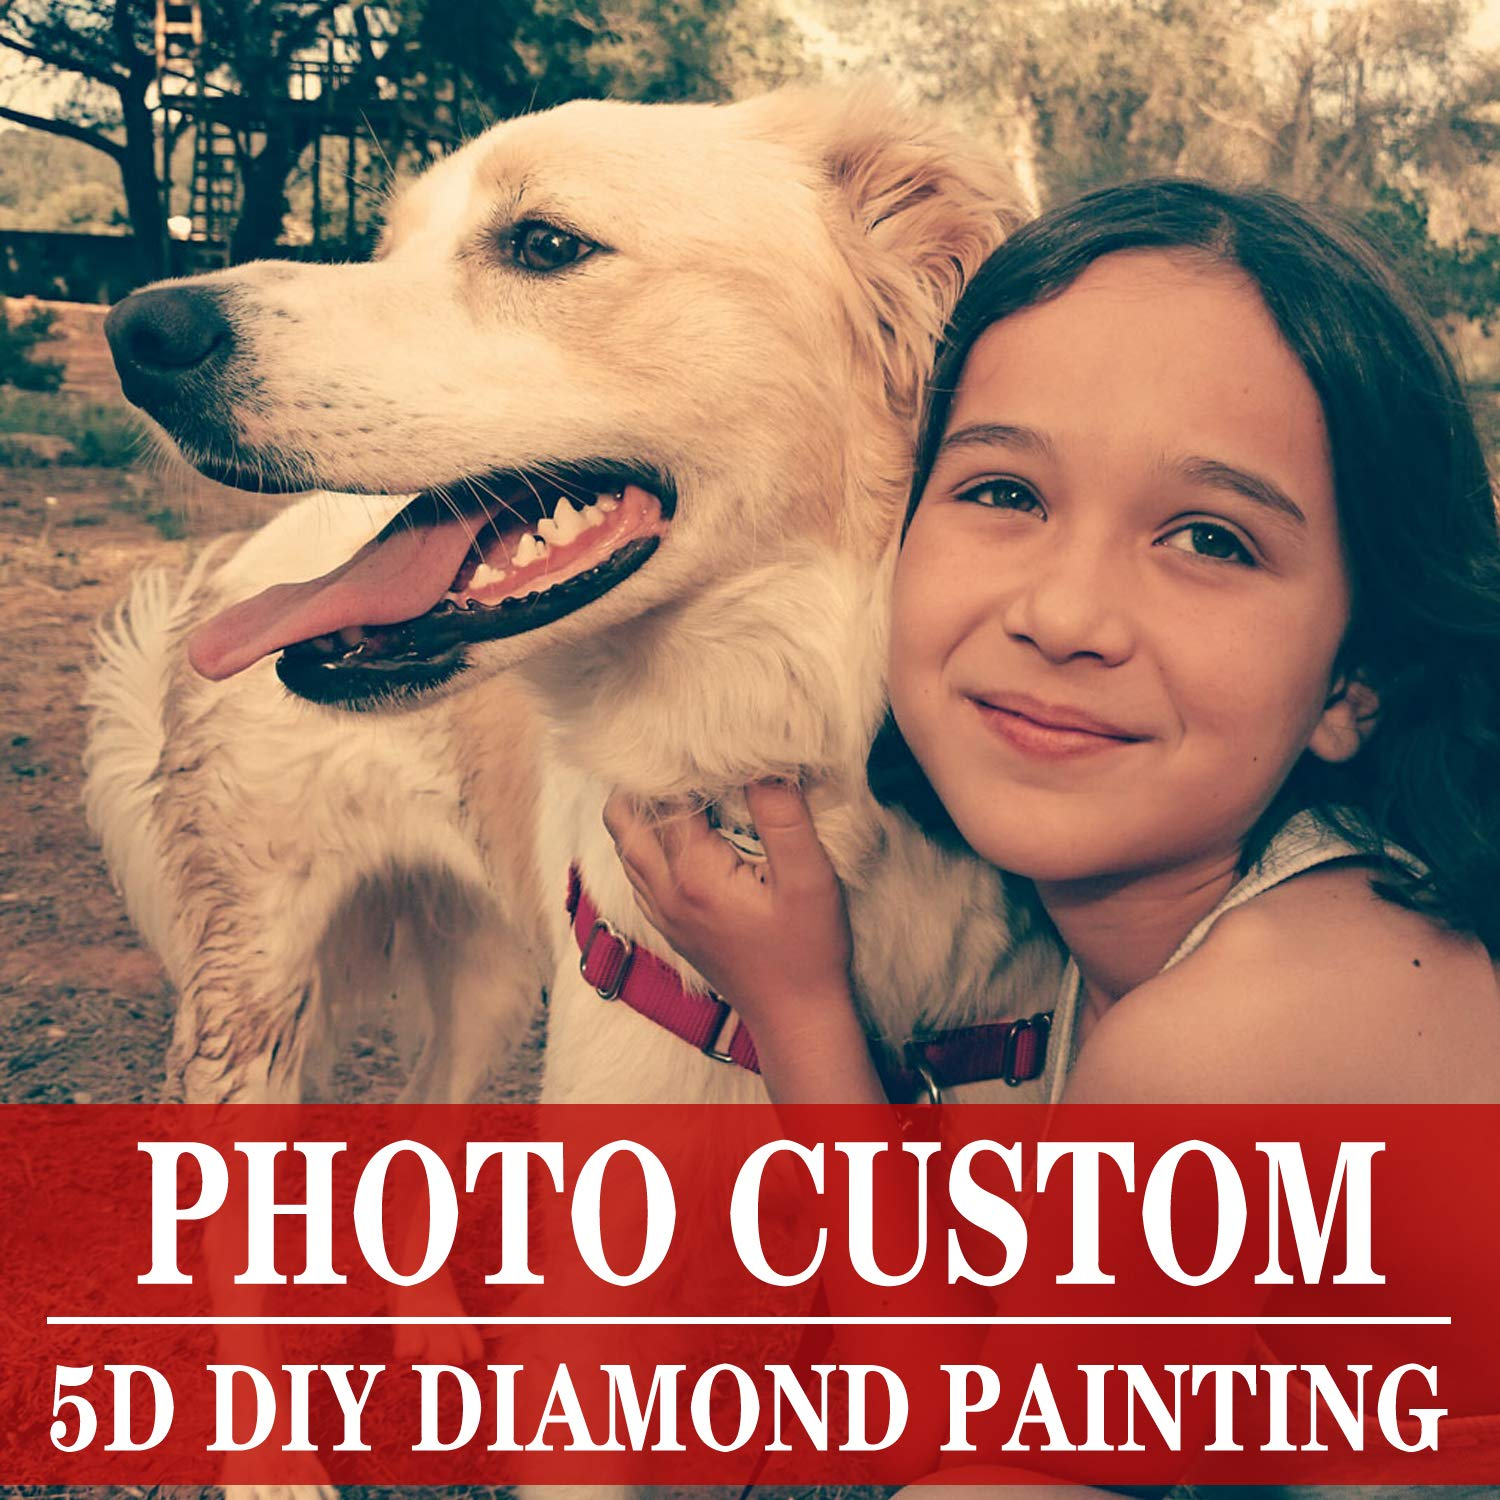 Private Custom Your Own Personalized Picture/Custom Diamond Painting Full Drill Kits for Adults/Birthday Gift Home Wall Decor 23.6×35.4 in/60×90 cm by MAXFYOU